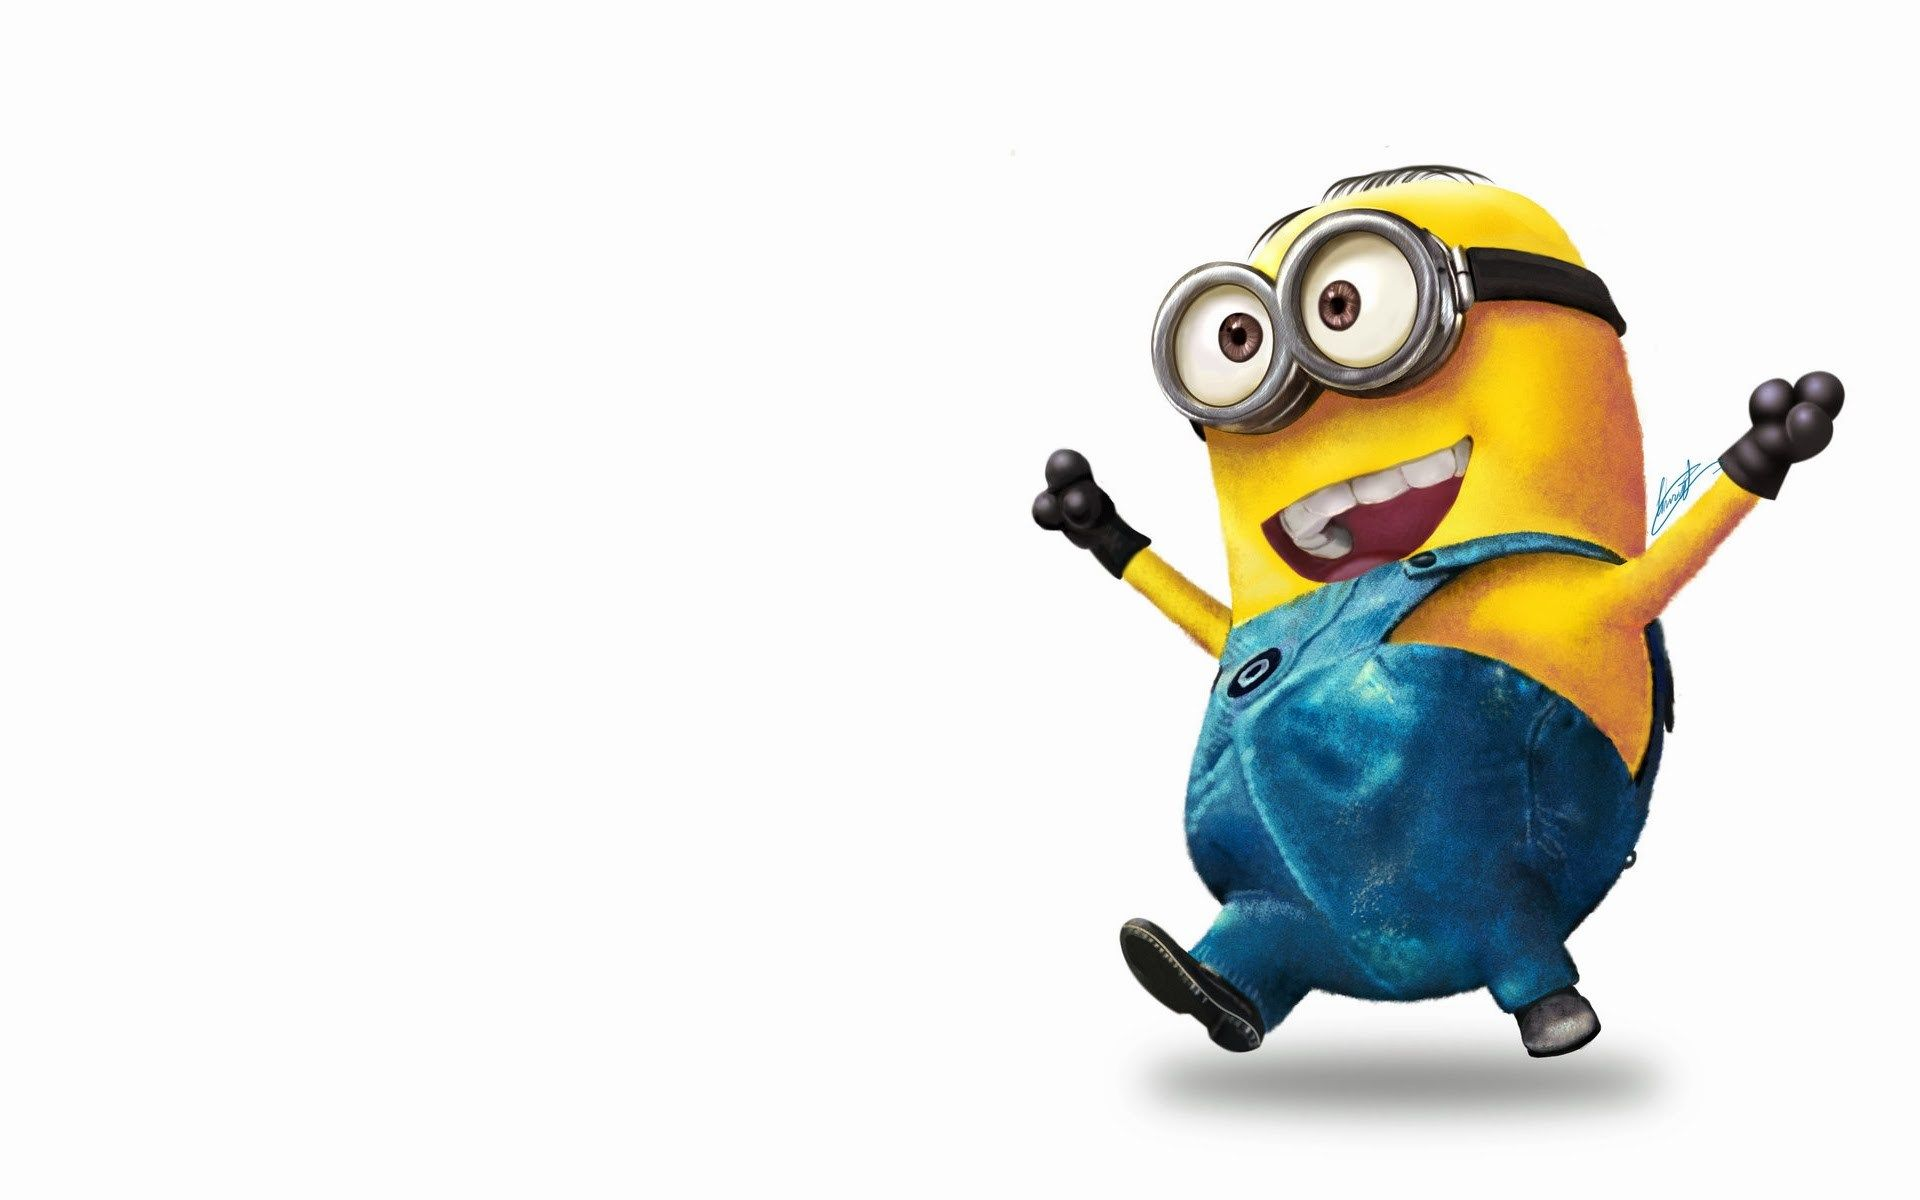 Minion cute wallpaper hd sharovarka pinterest